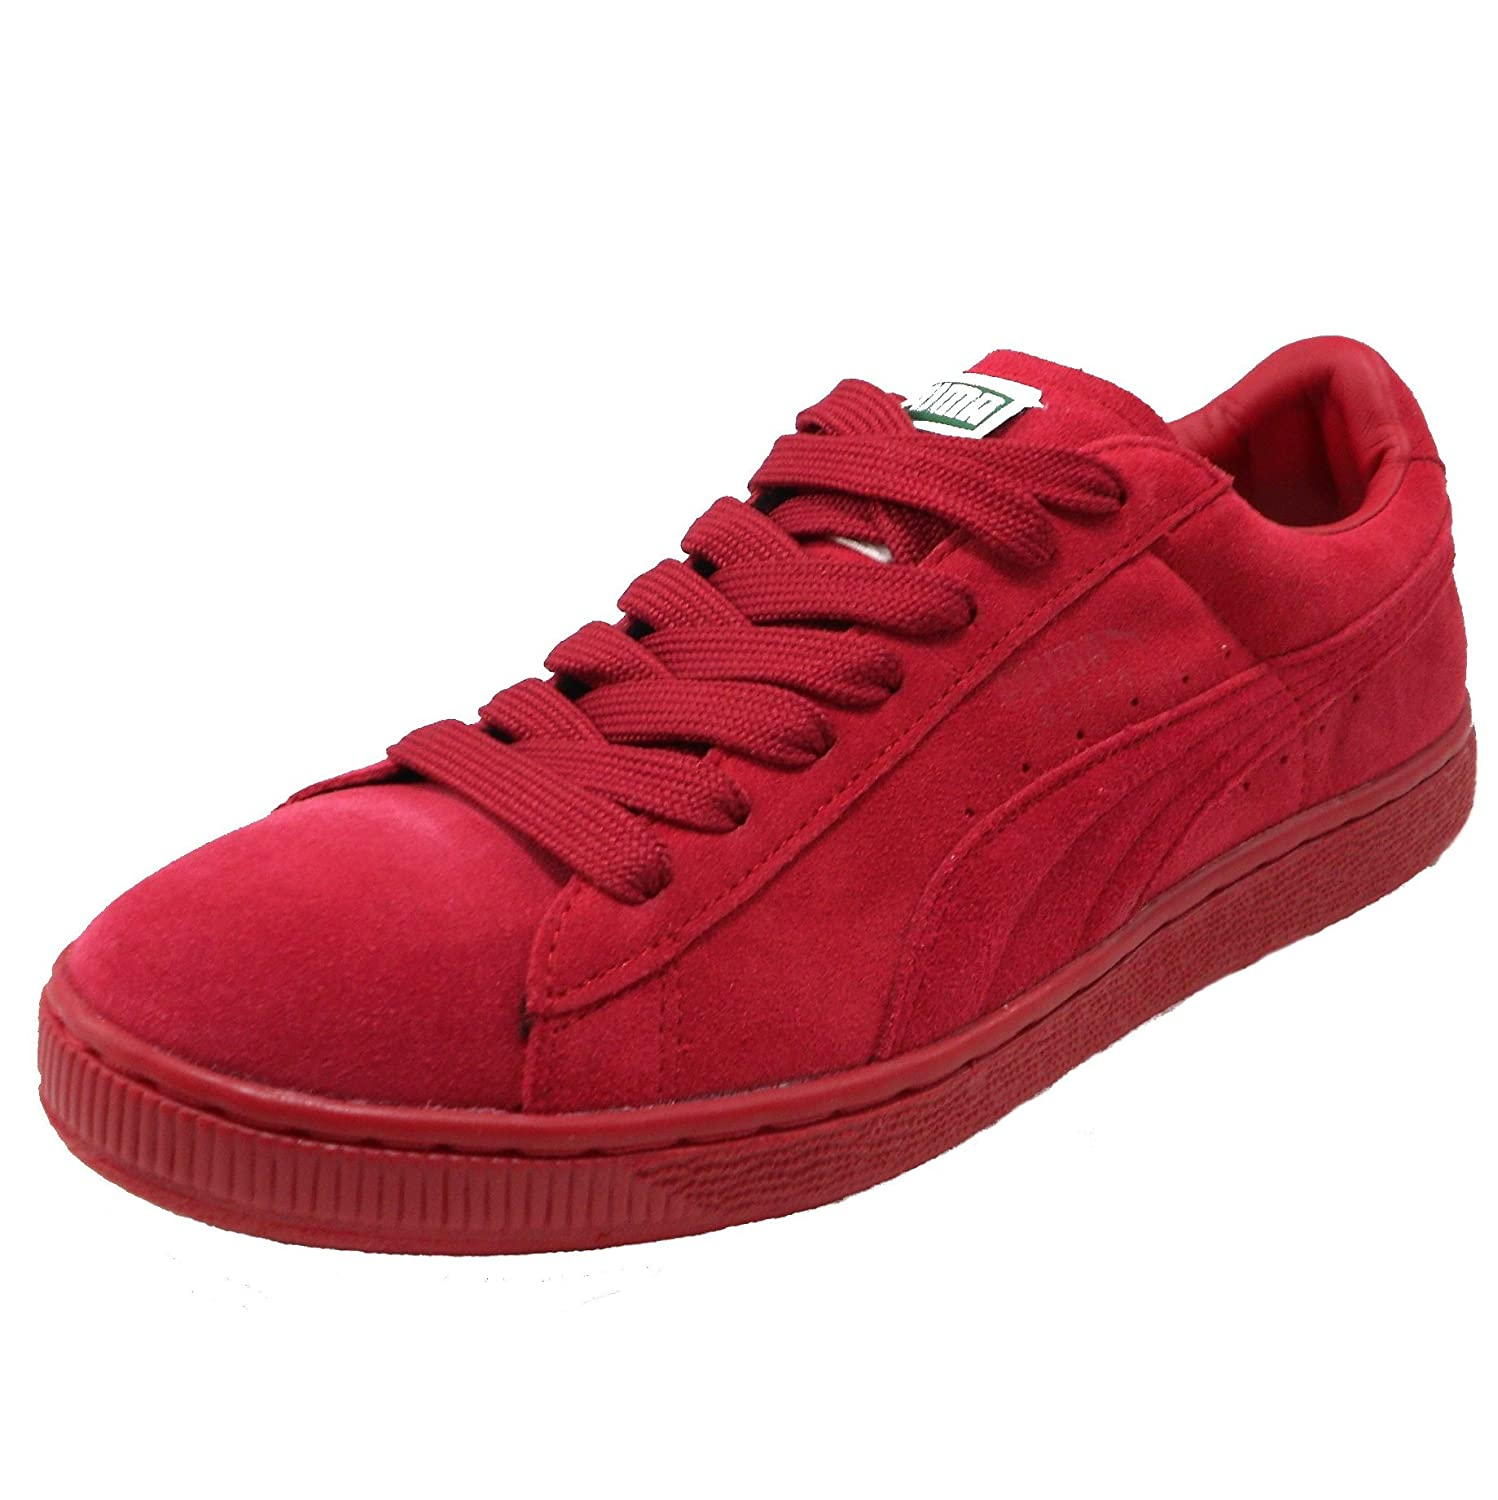 Puma Suede Jester Red On Jester Red